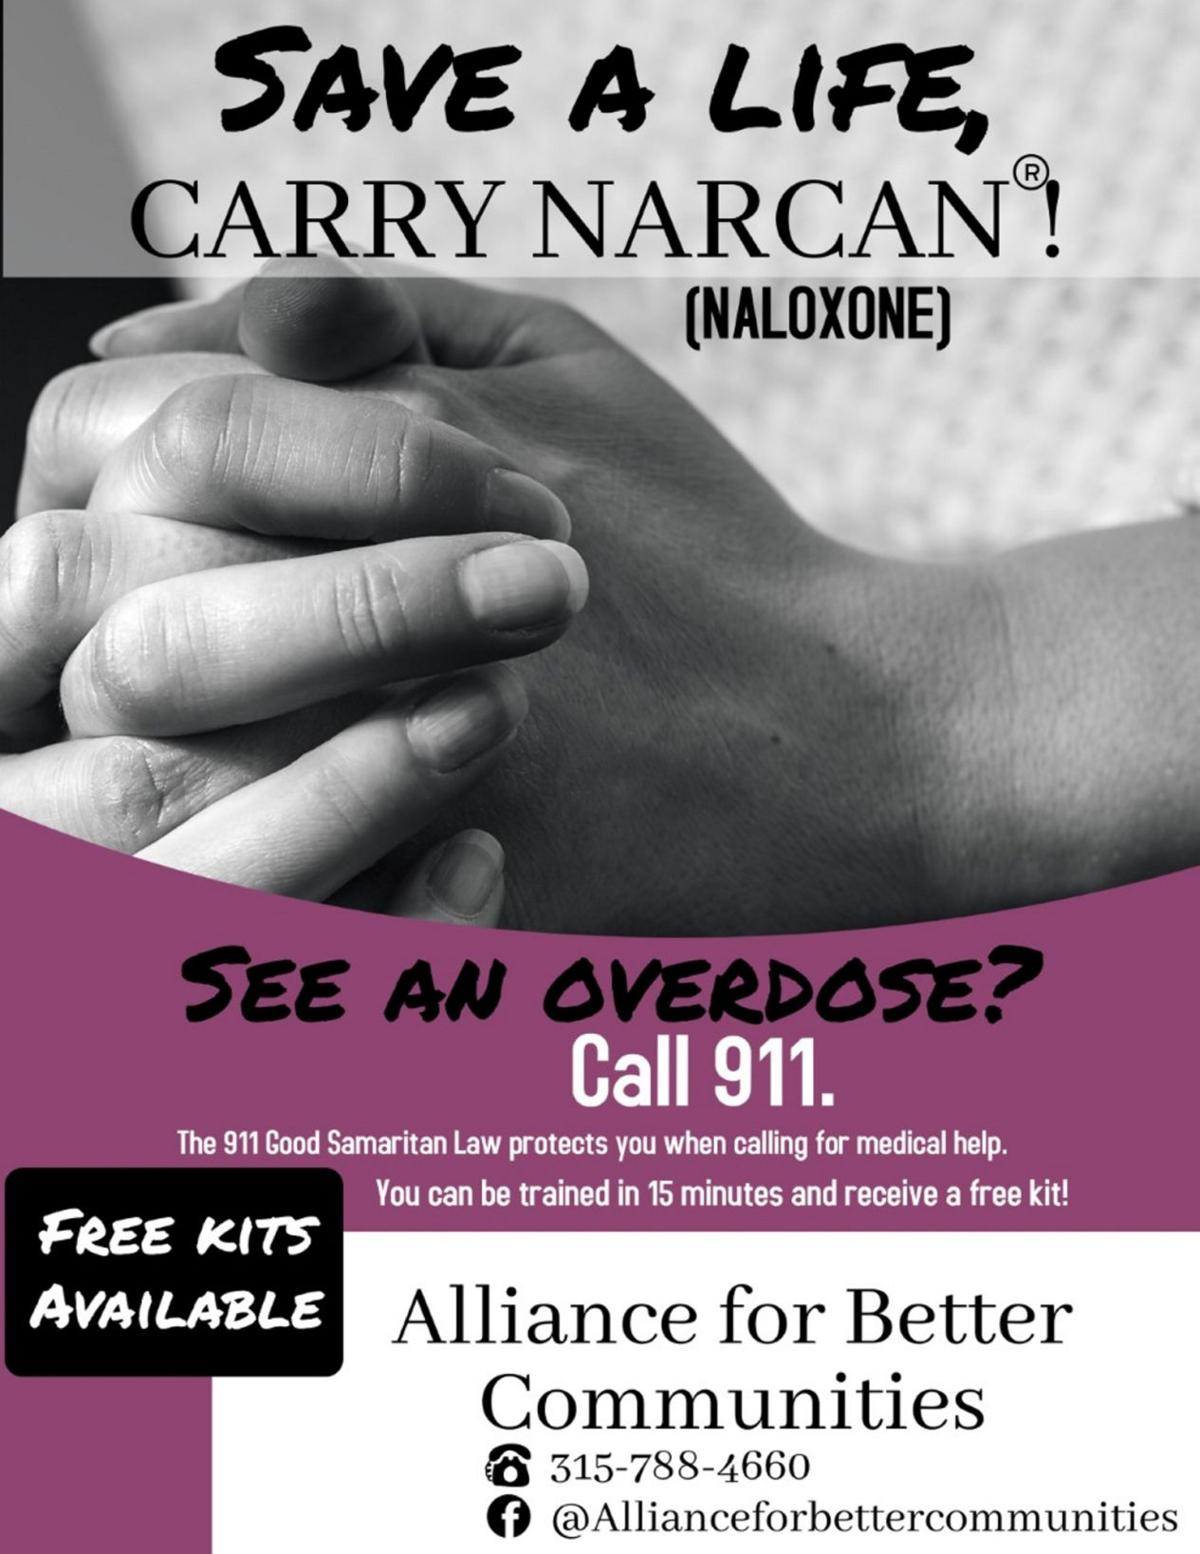 Agencies joining forces on Narcan messaging